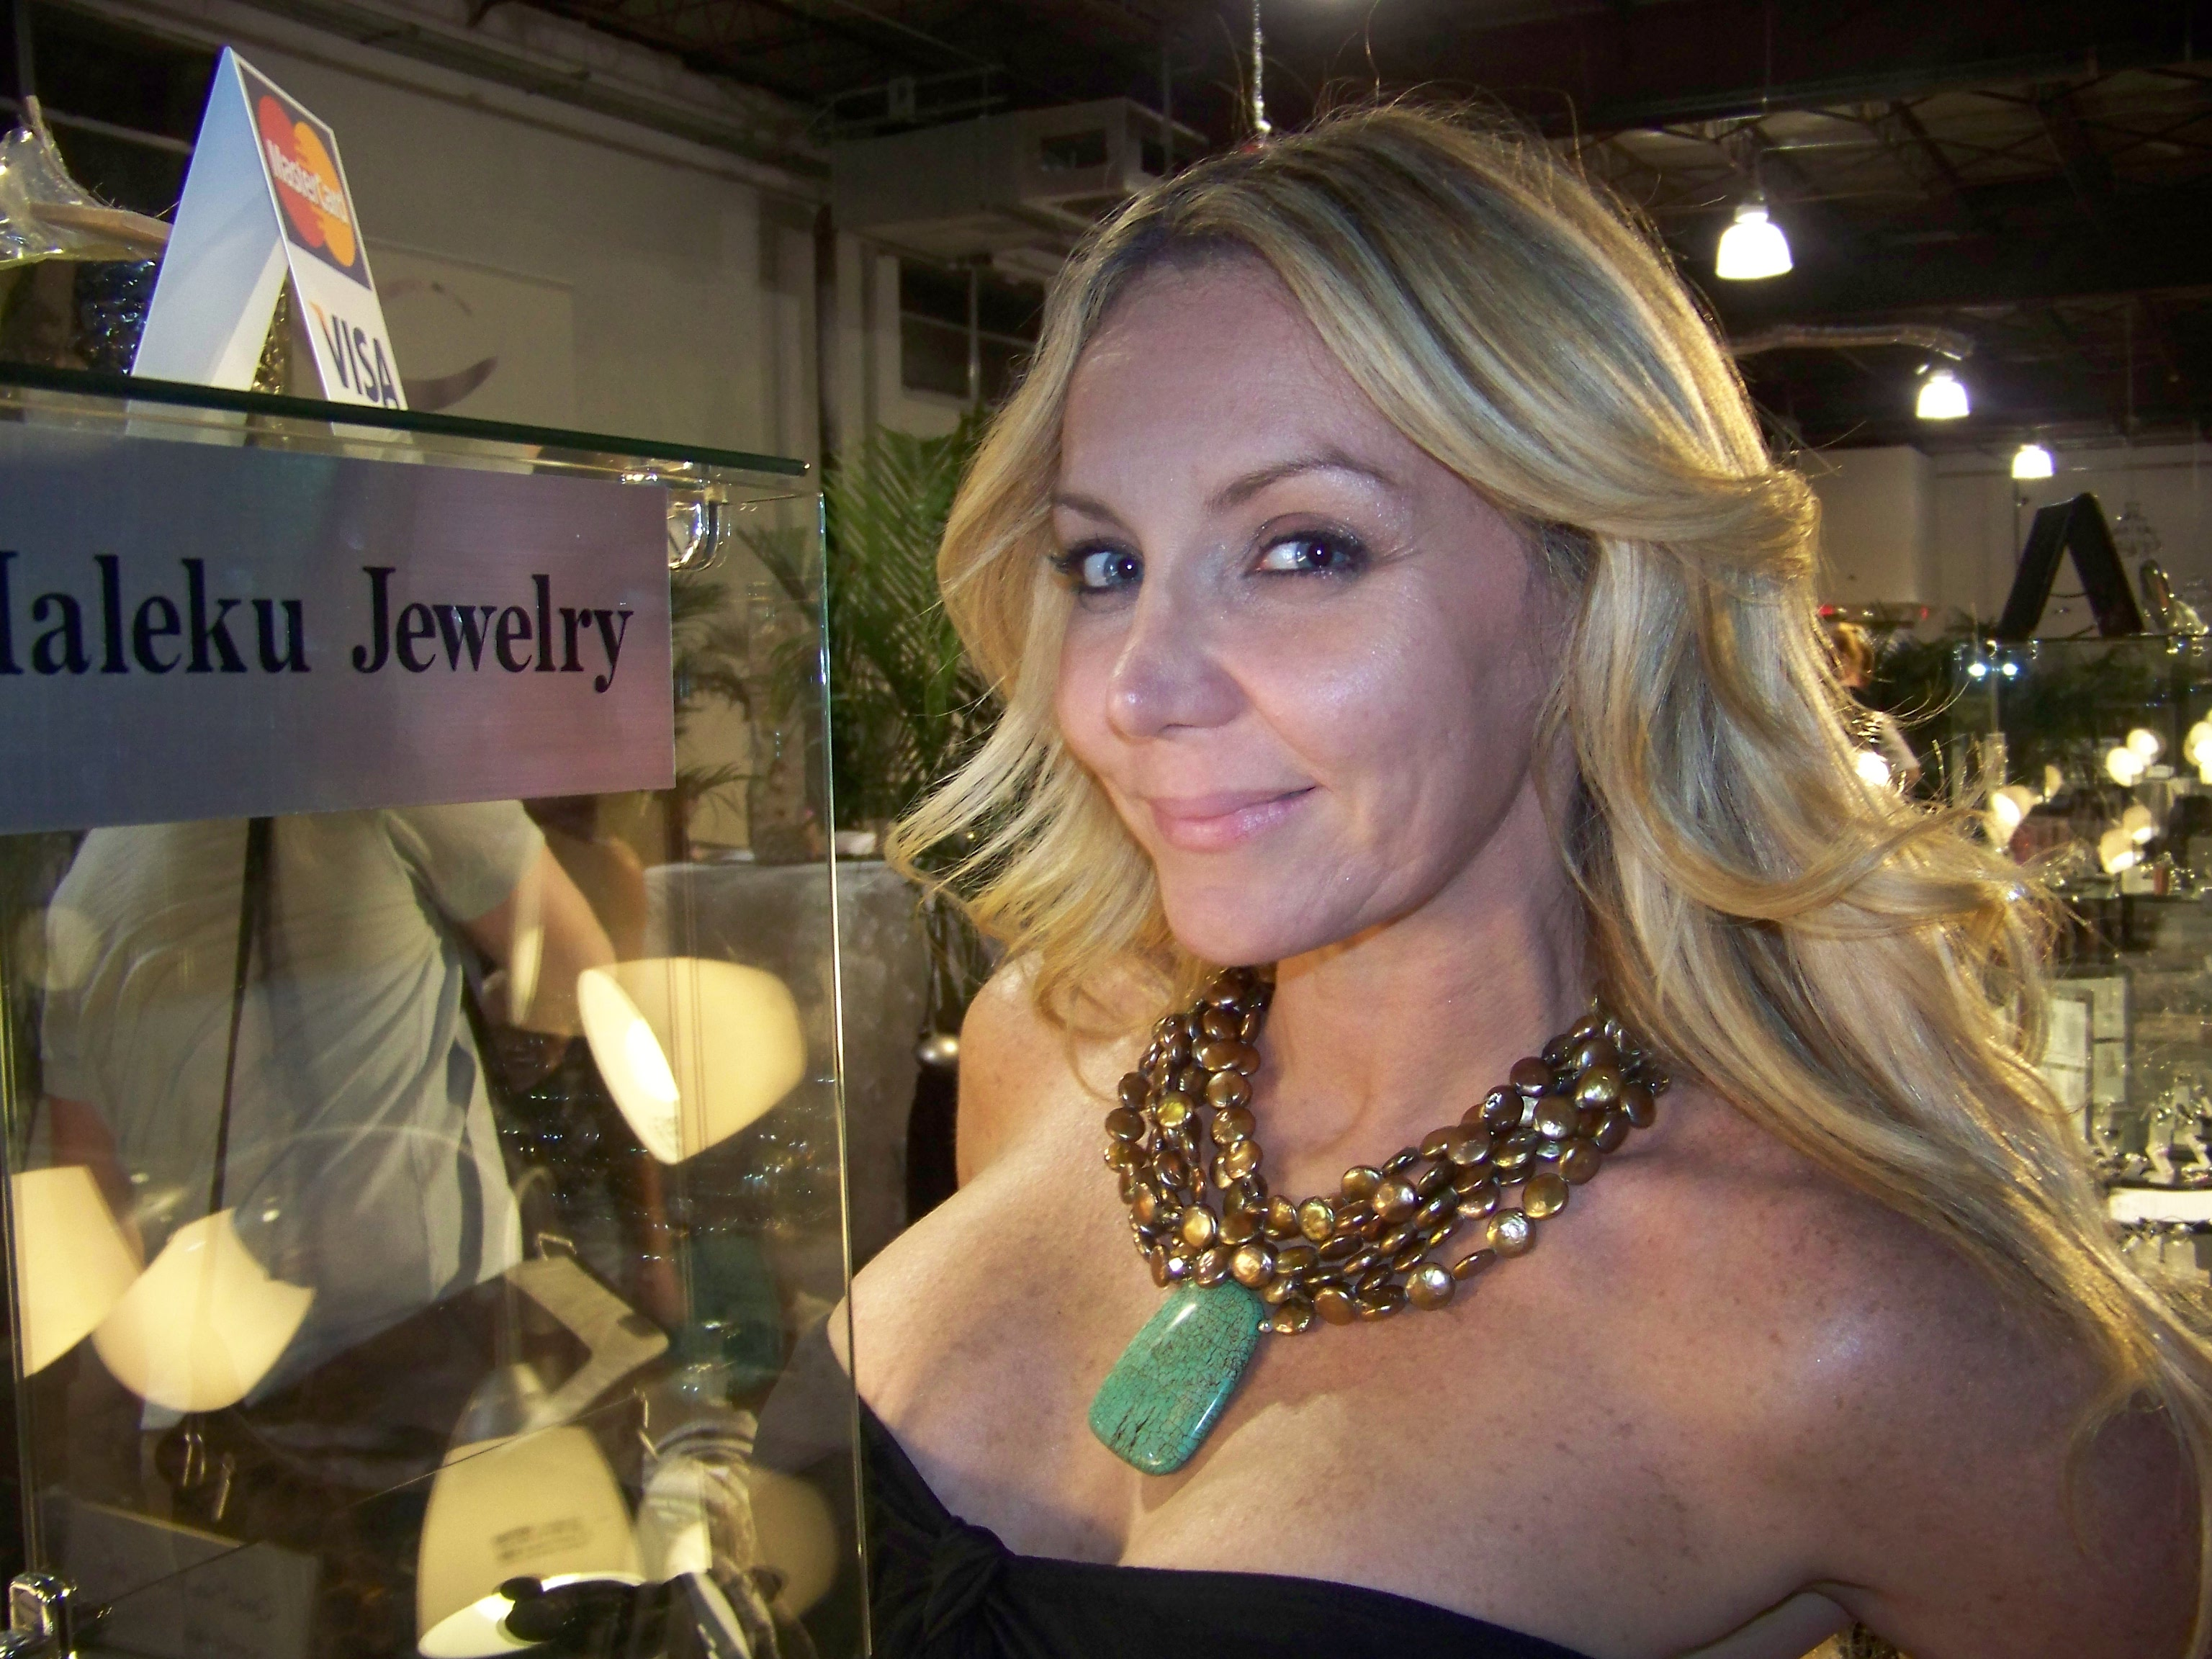 Blonde wearing turquoise and copper necklace by Maleku Jewelry at Miami Fashion Week